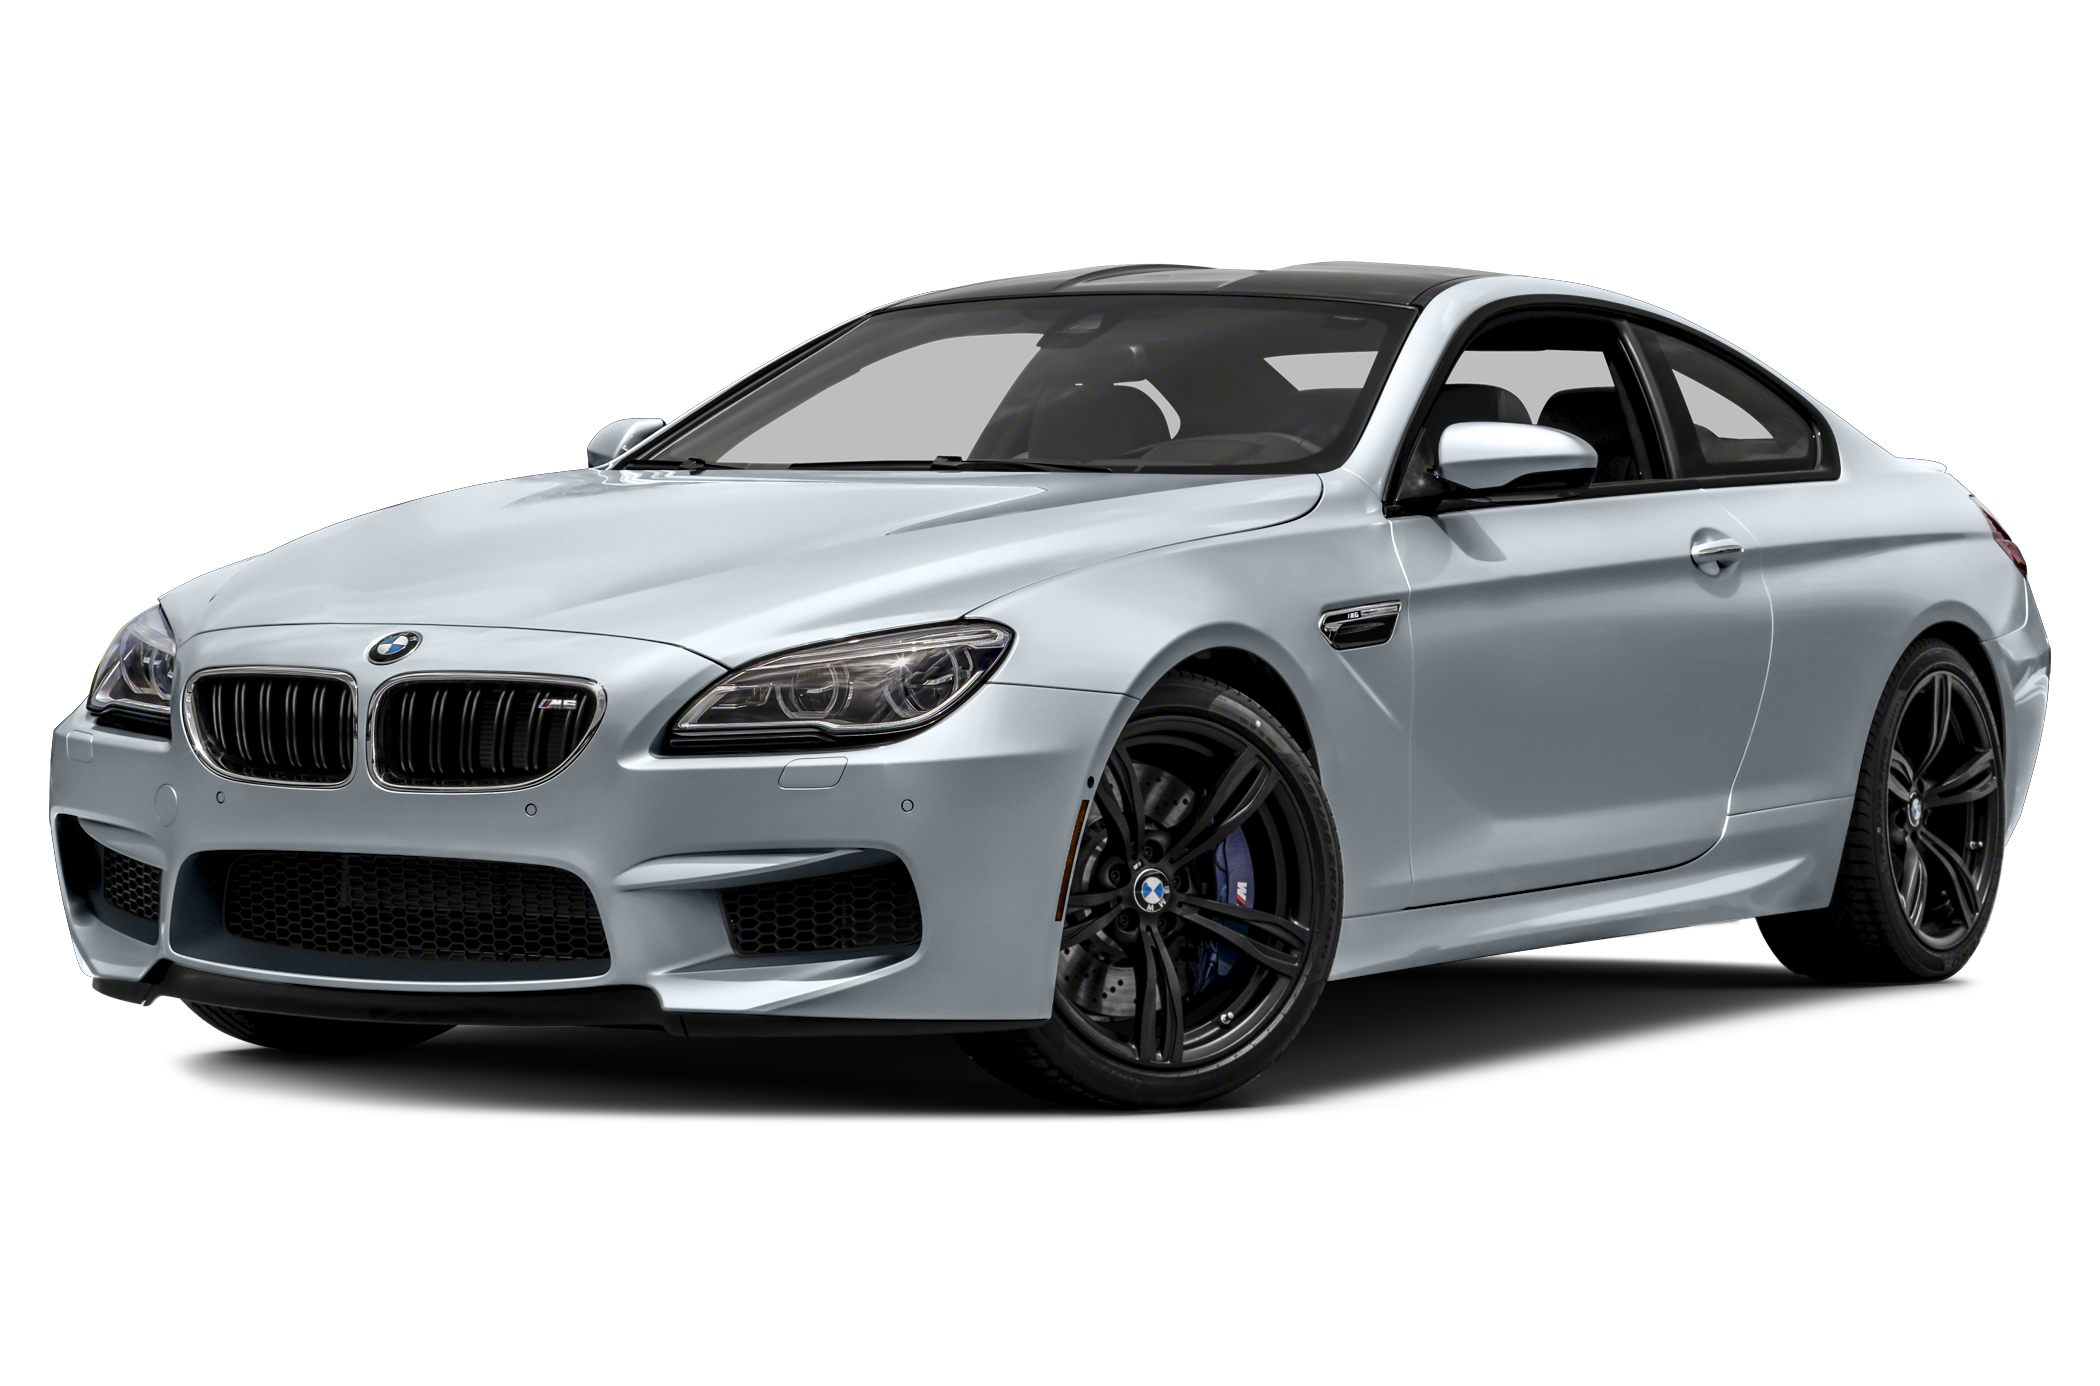 2016 bmw m6. Black Bedroom Furniture Sets. Home Design Ideas